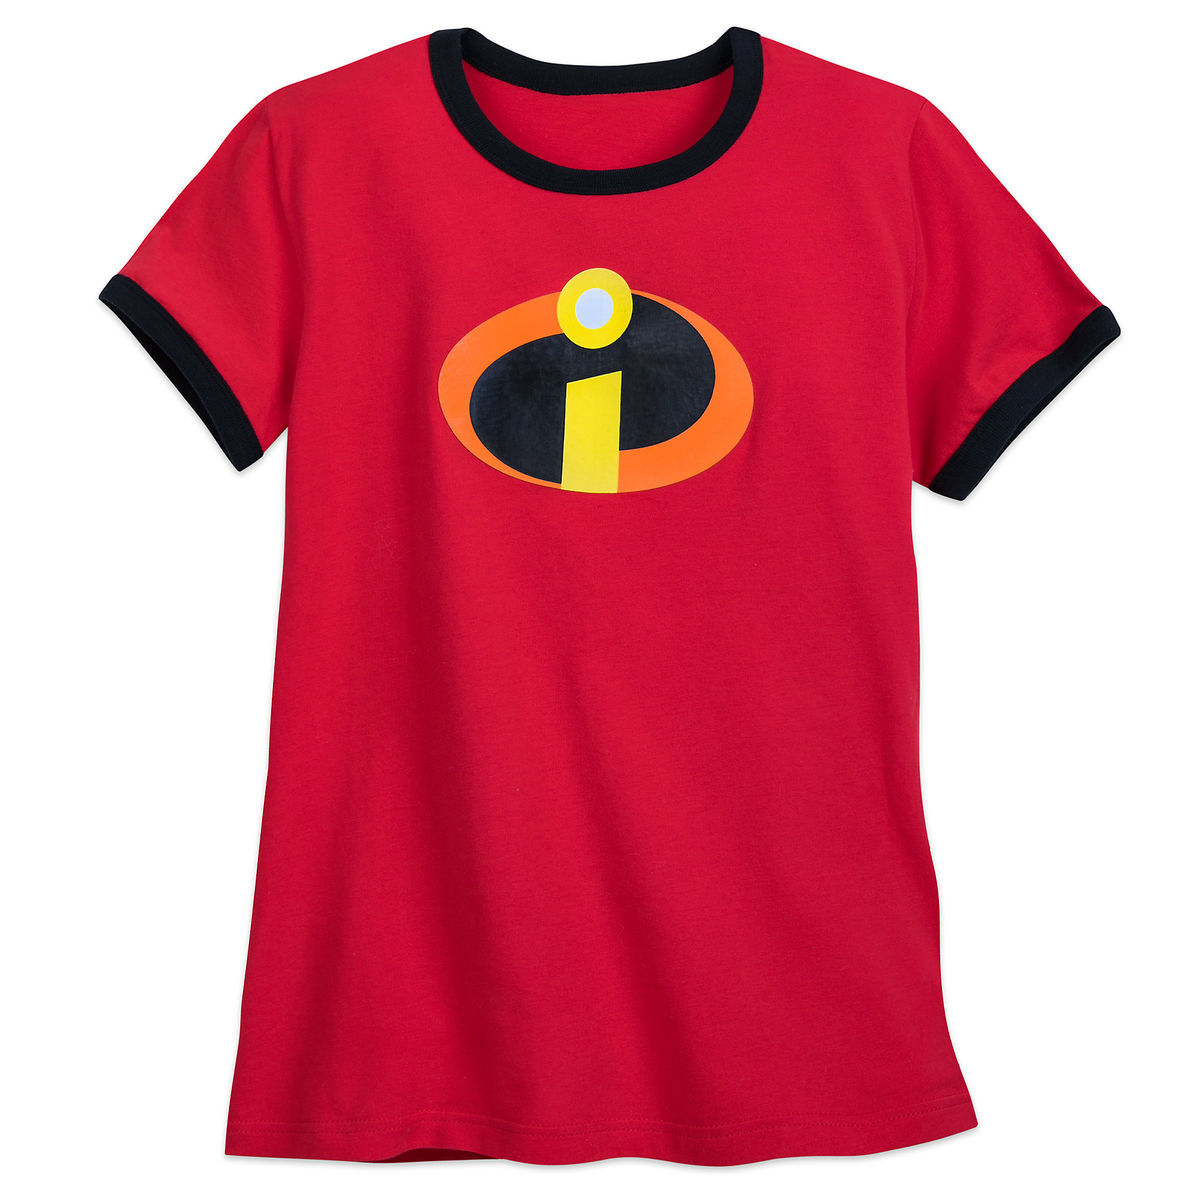 Product Image of Incredibles Logo Ringer T-Shirt for Women   1 6f3481b0d